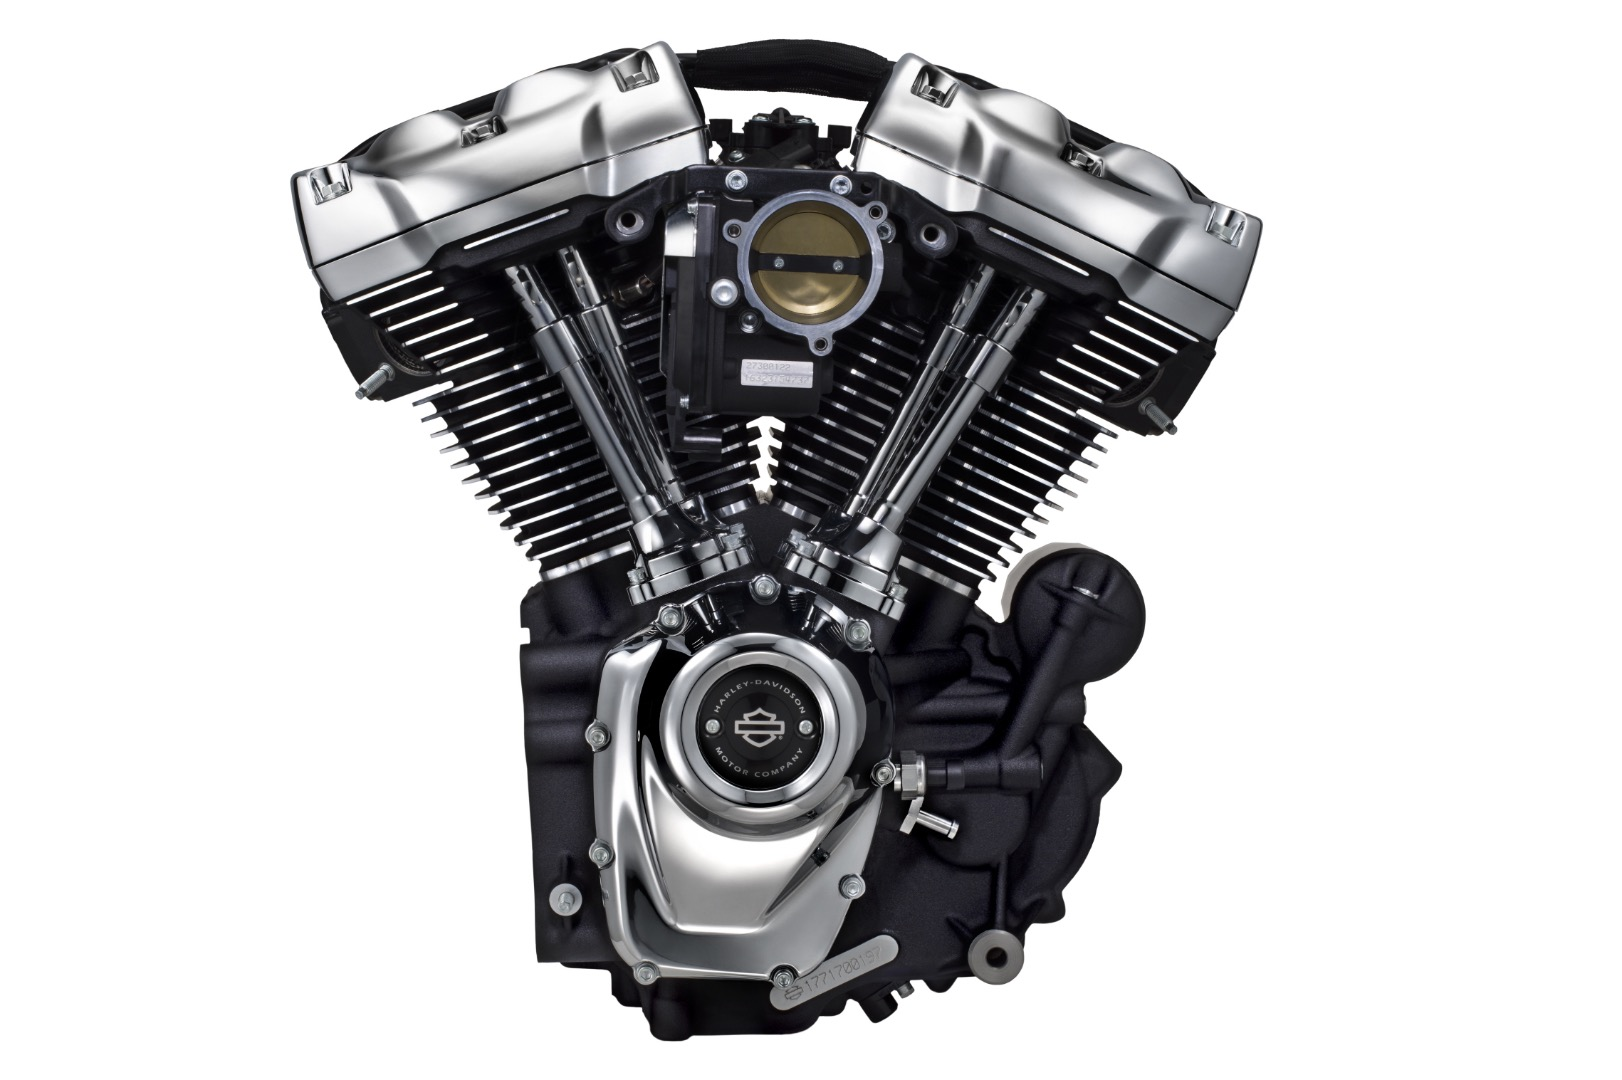 2017 Harley Davidson Milwaukee Eight Motors 11 Fast Factson Honda Motorcycle Engine Diagram